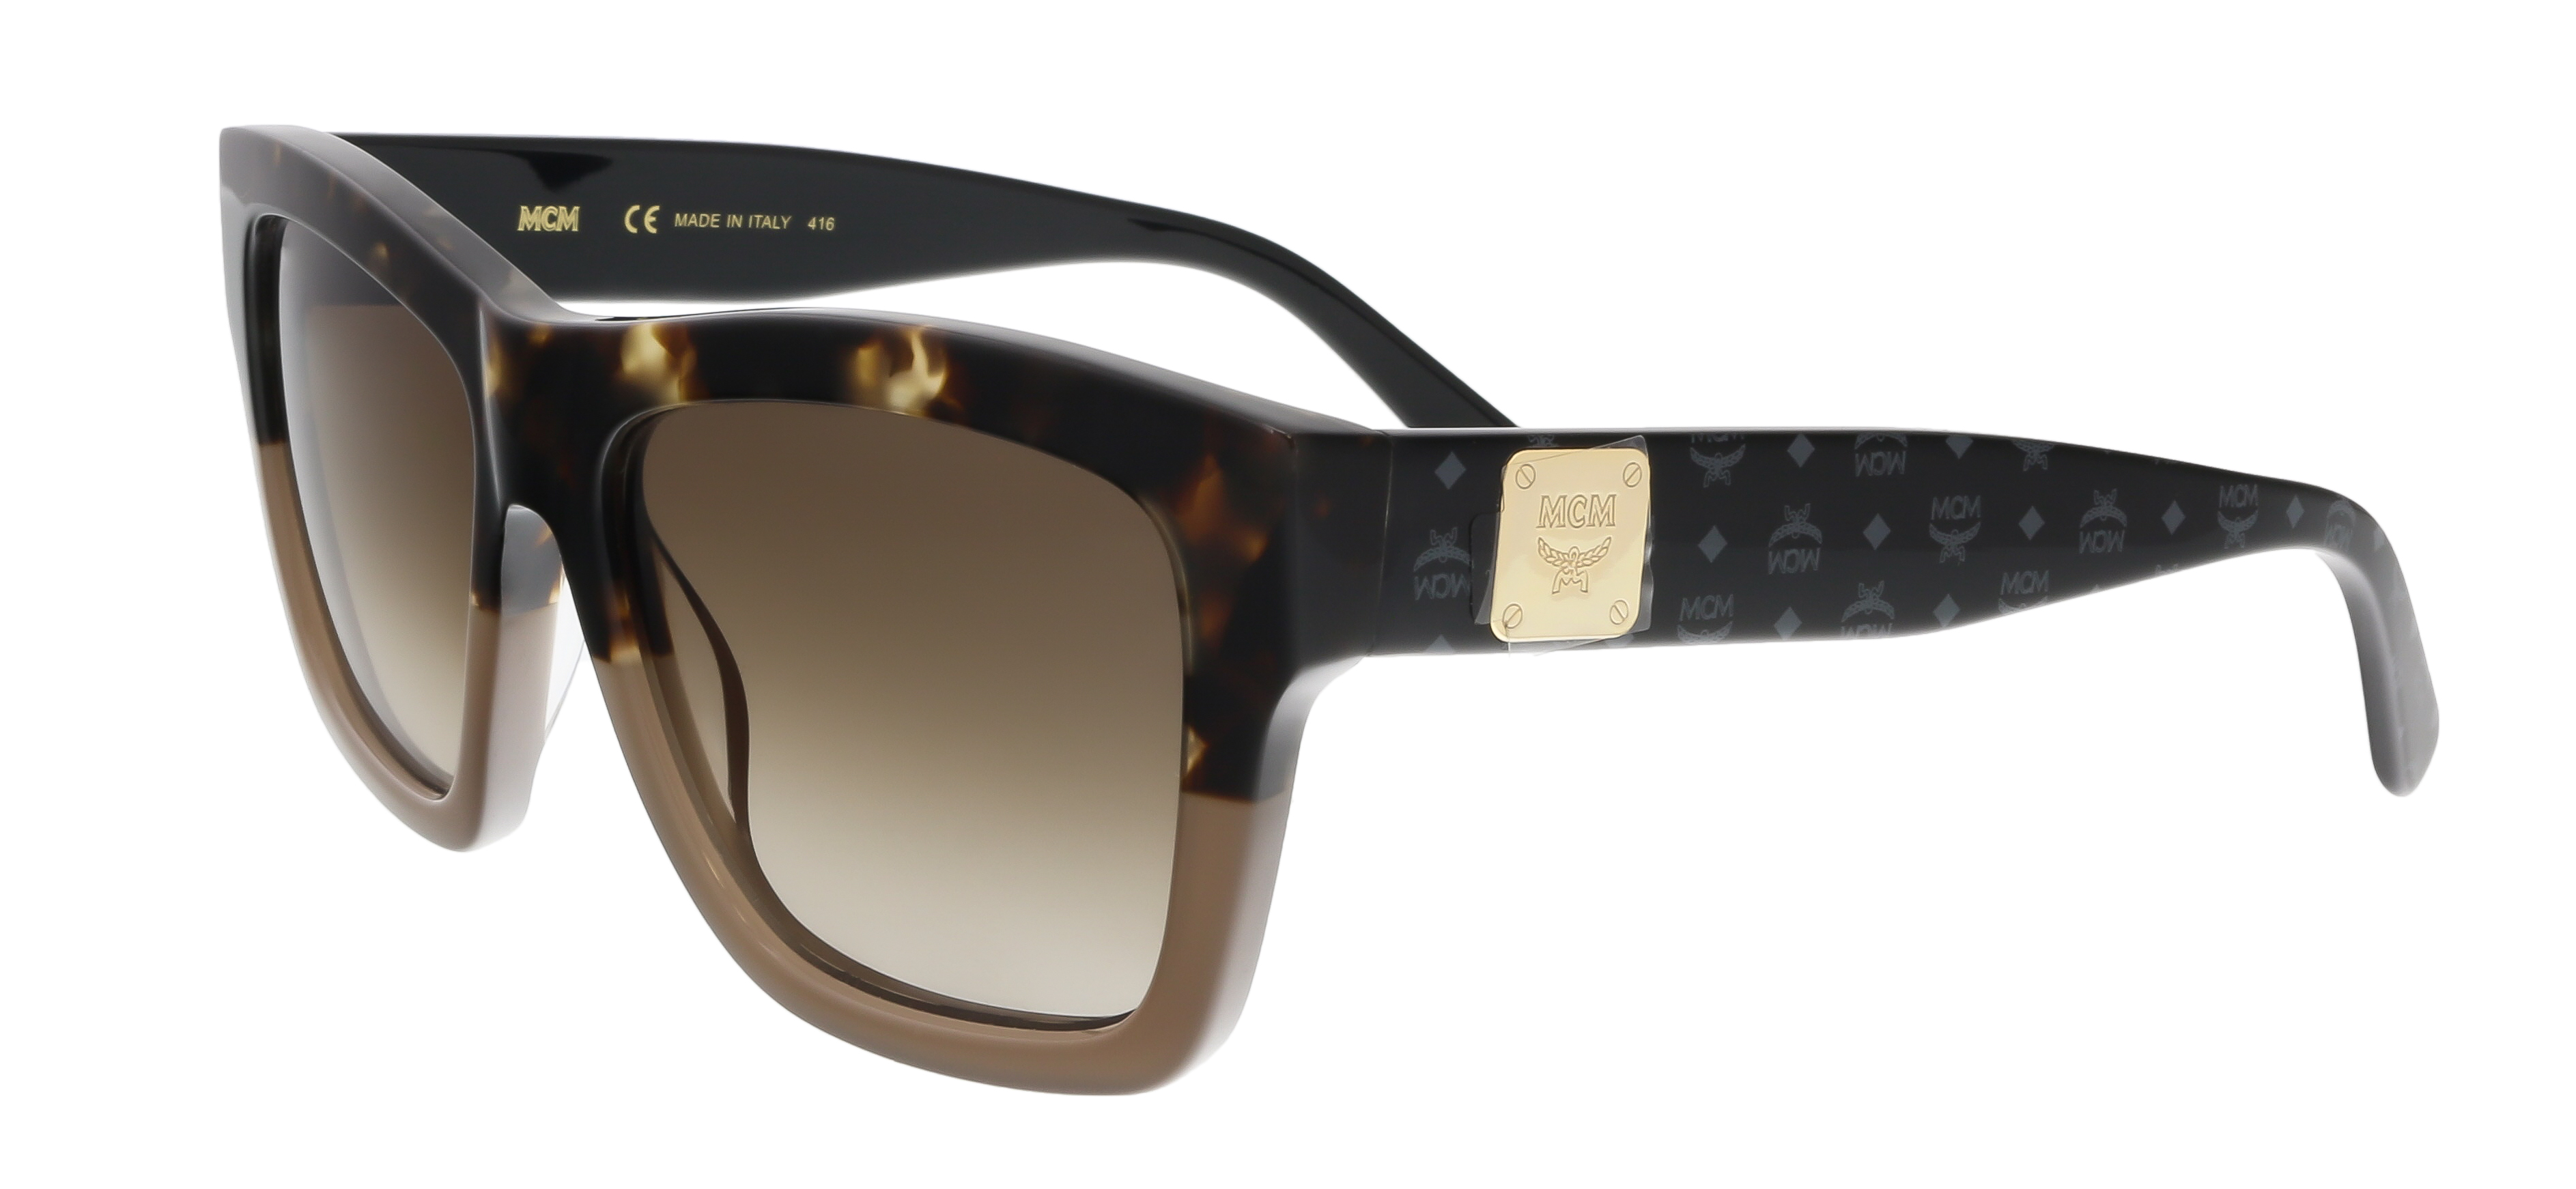 MCM607S 217 Tortoise-Turtle Dove Square Feline Sunglasses